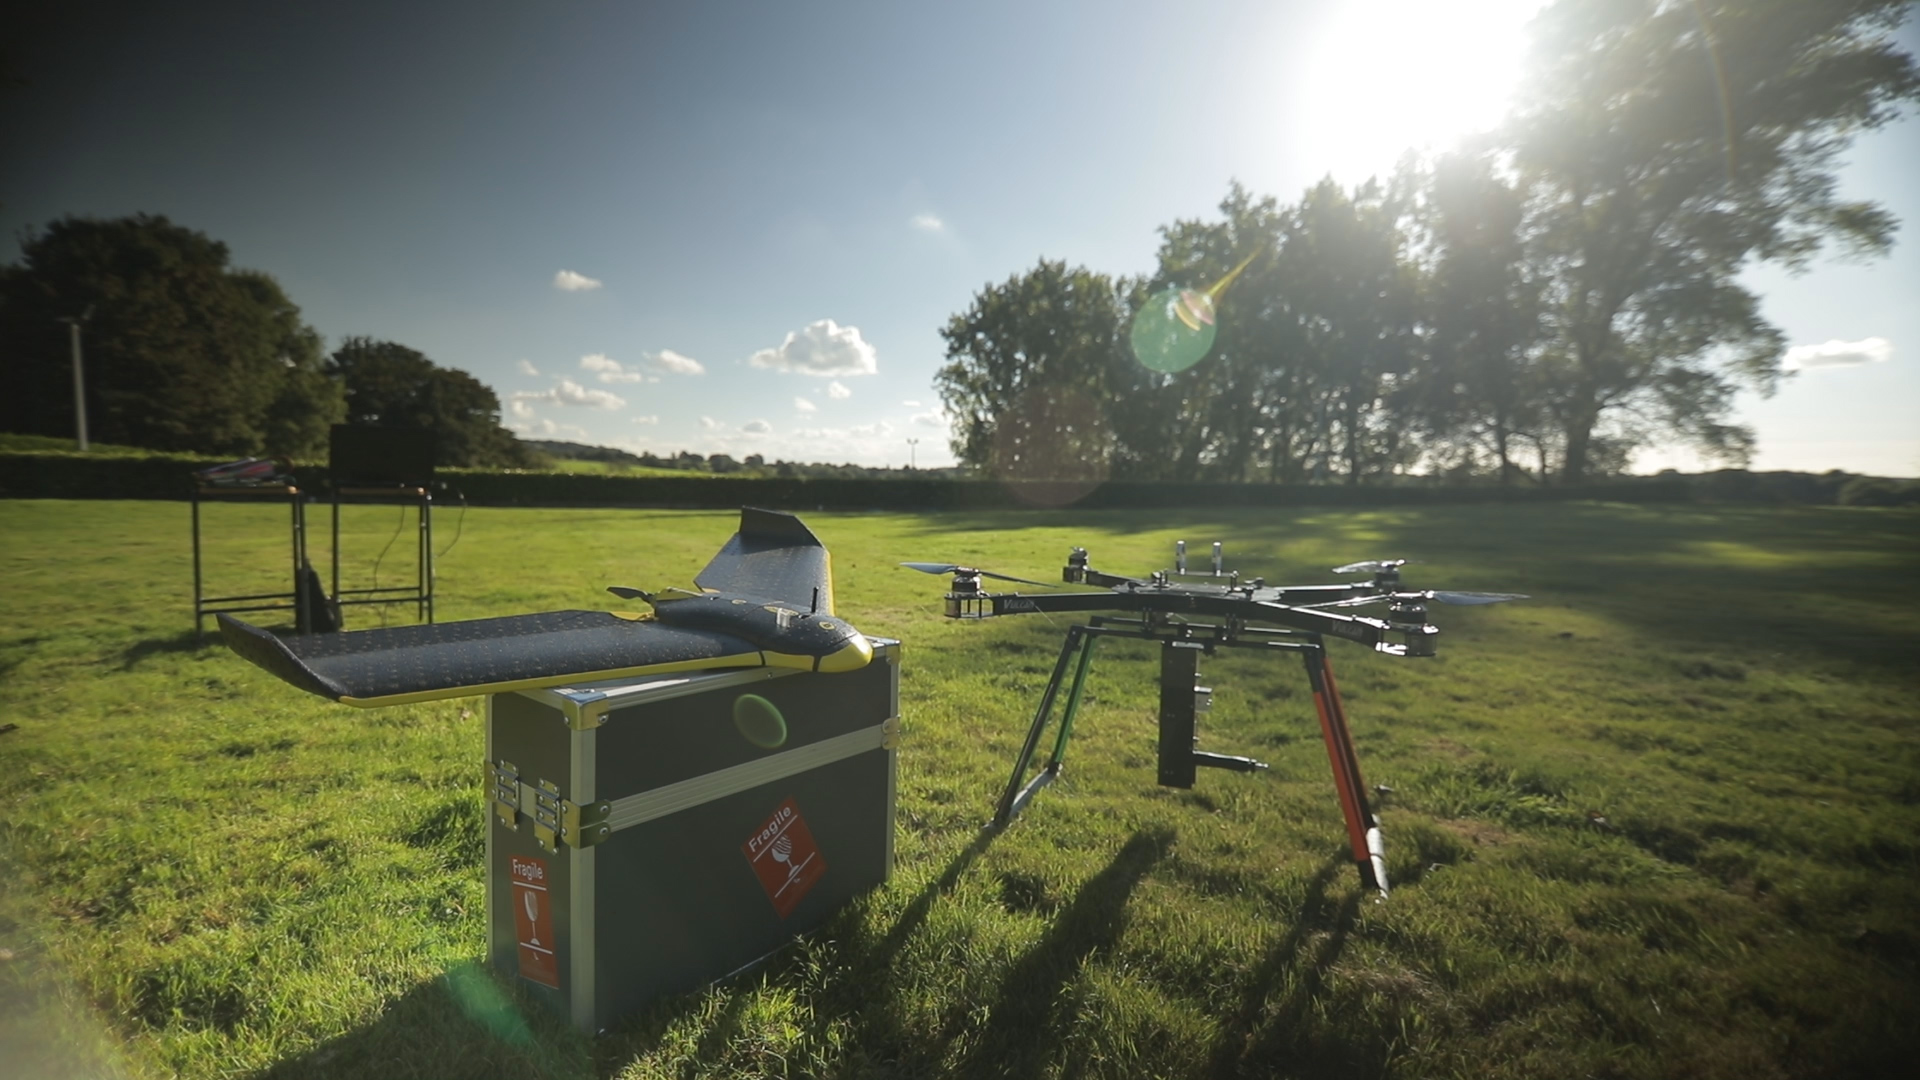 <p>BioCarbon's drone on a test site. Source: BioCarbon Engineering</p>